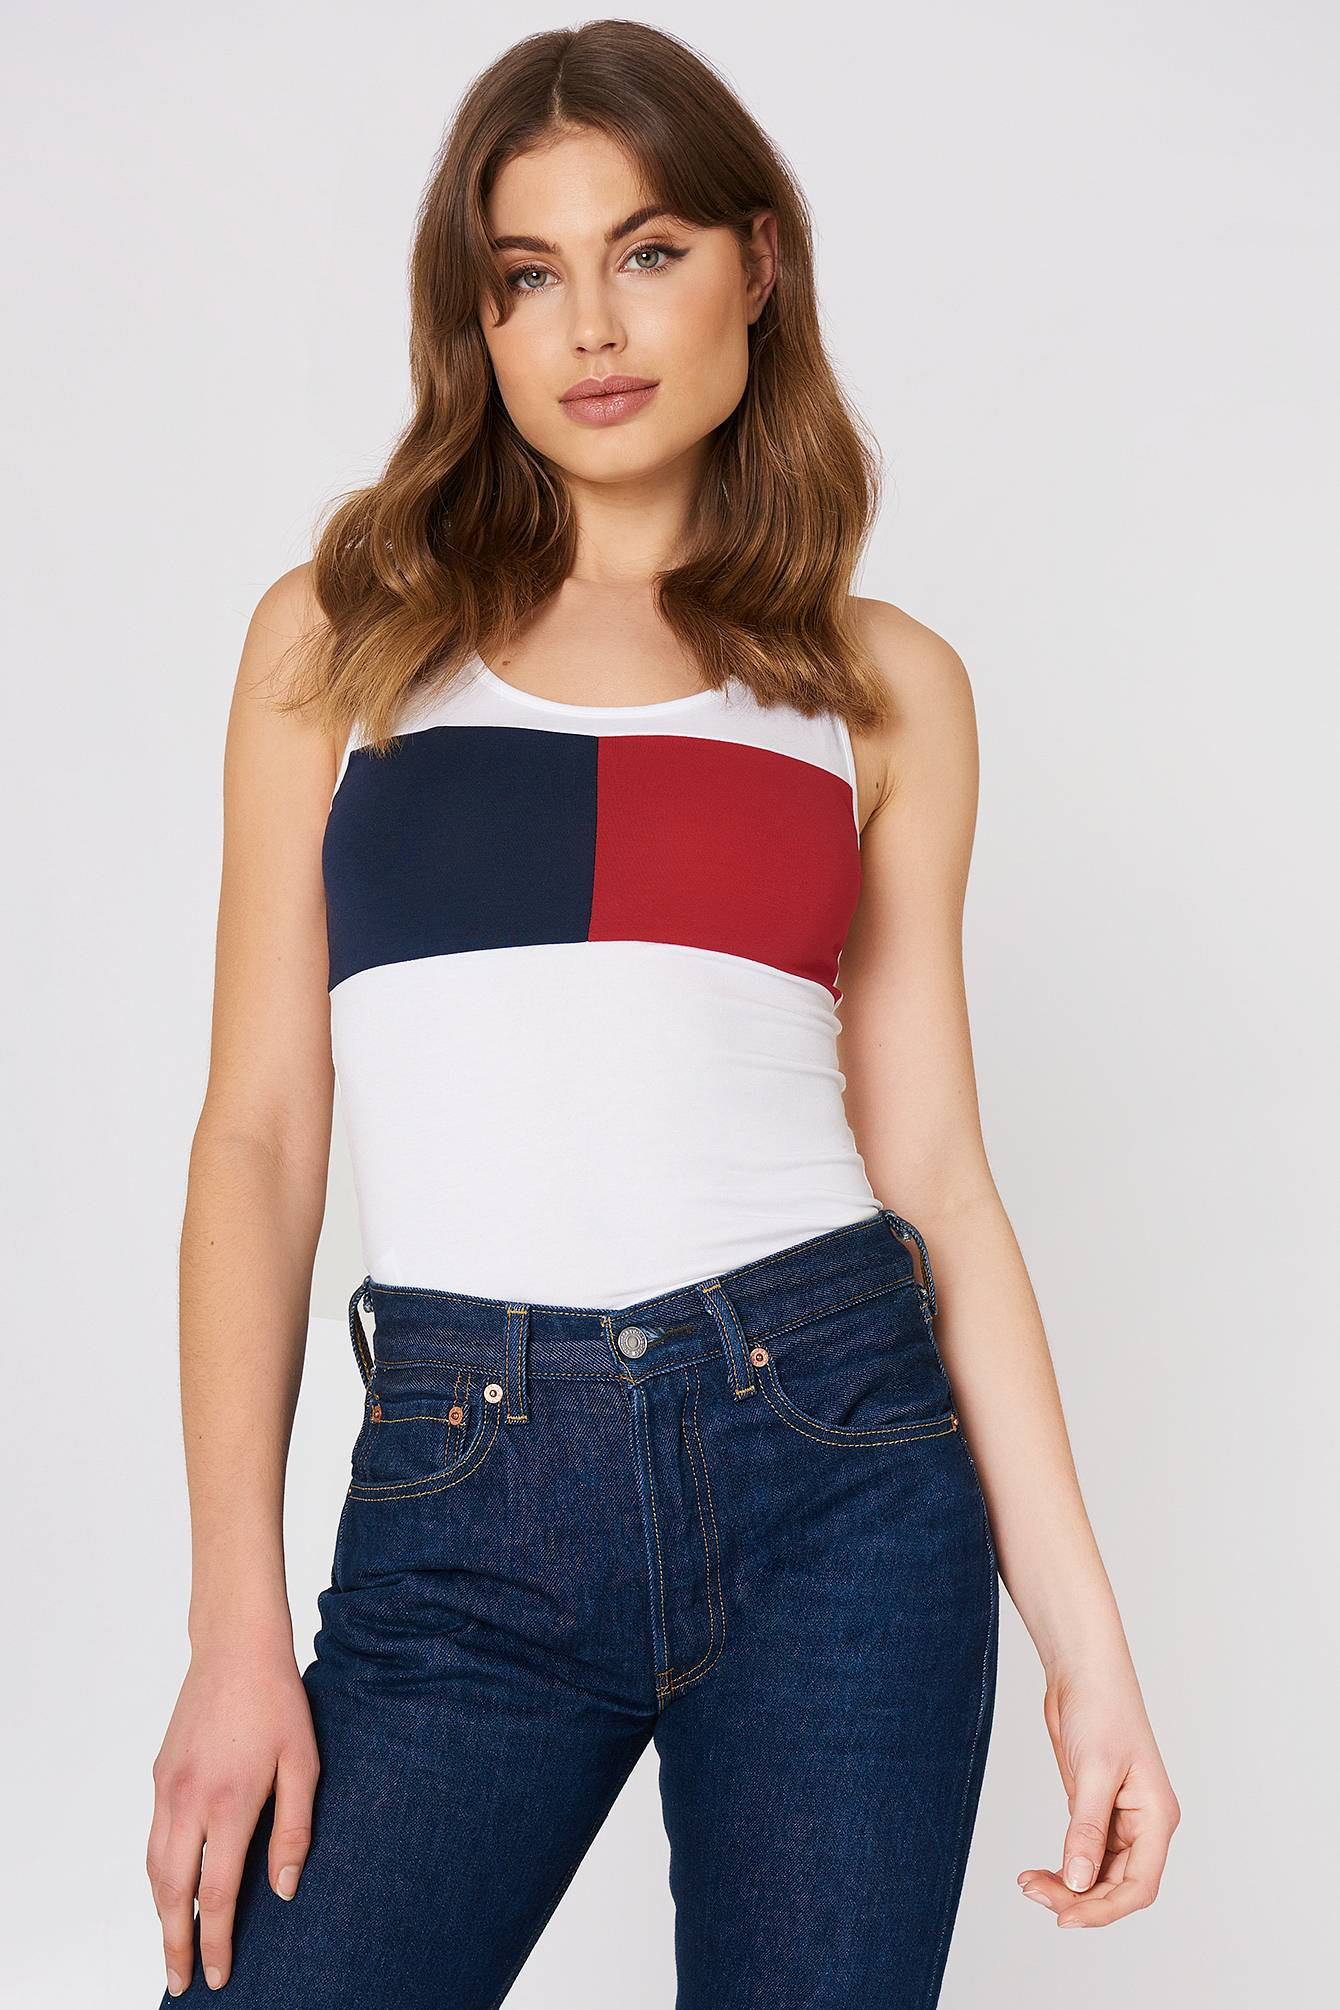 Tommy Hilfiger Tank Top - White,Multicolor